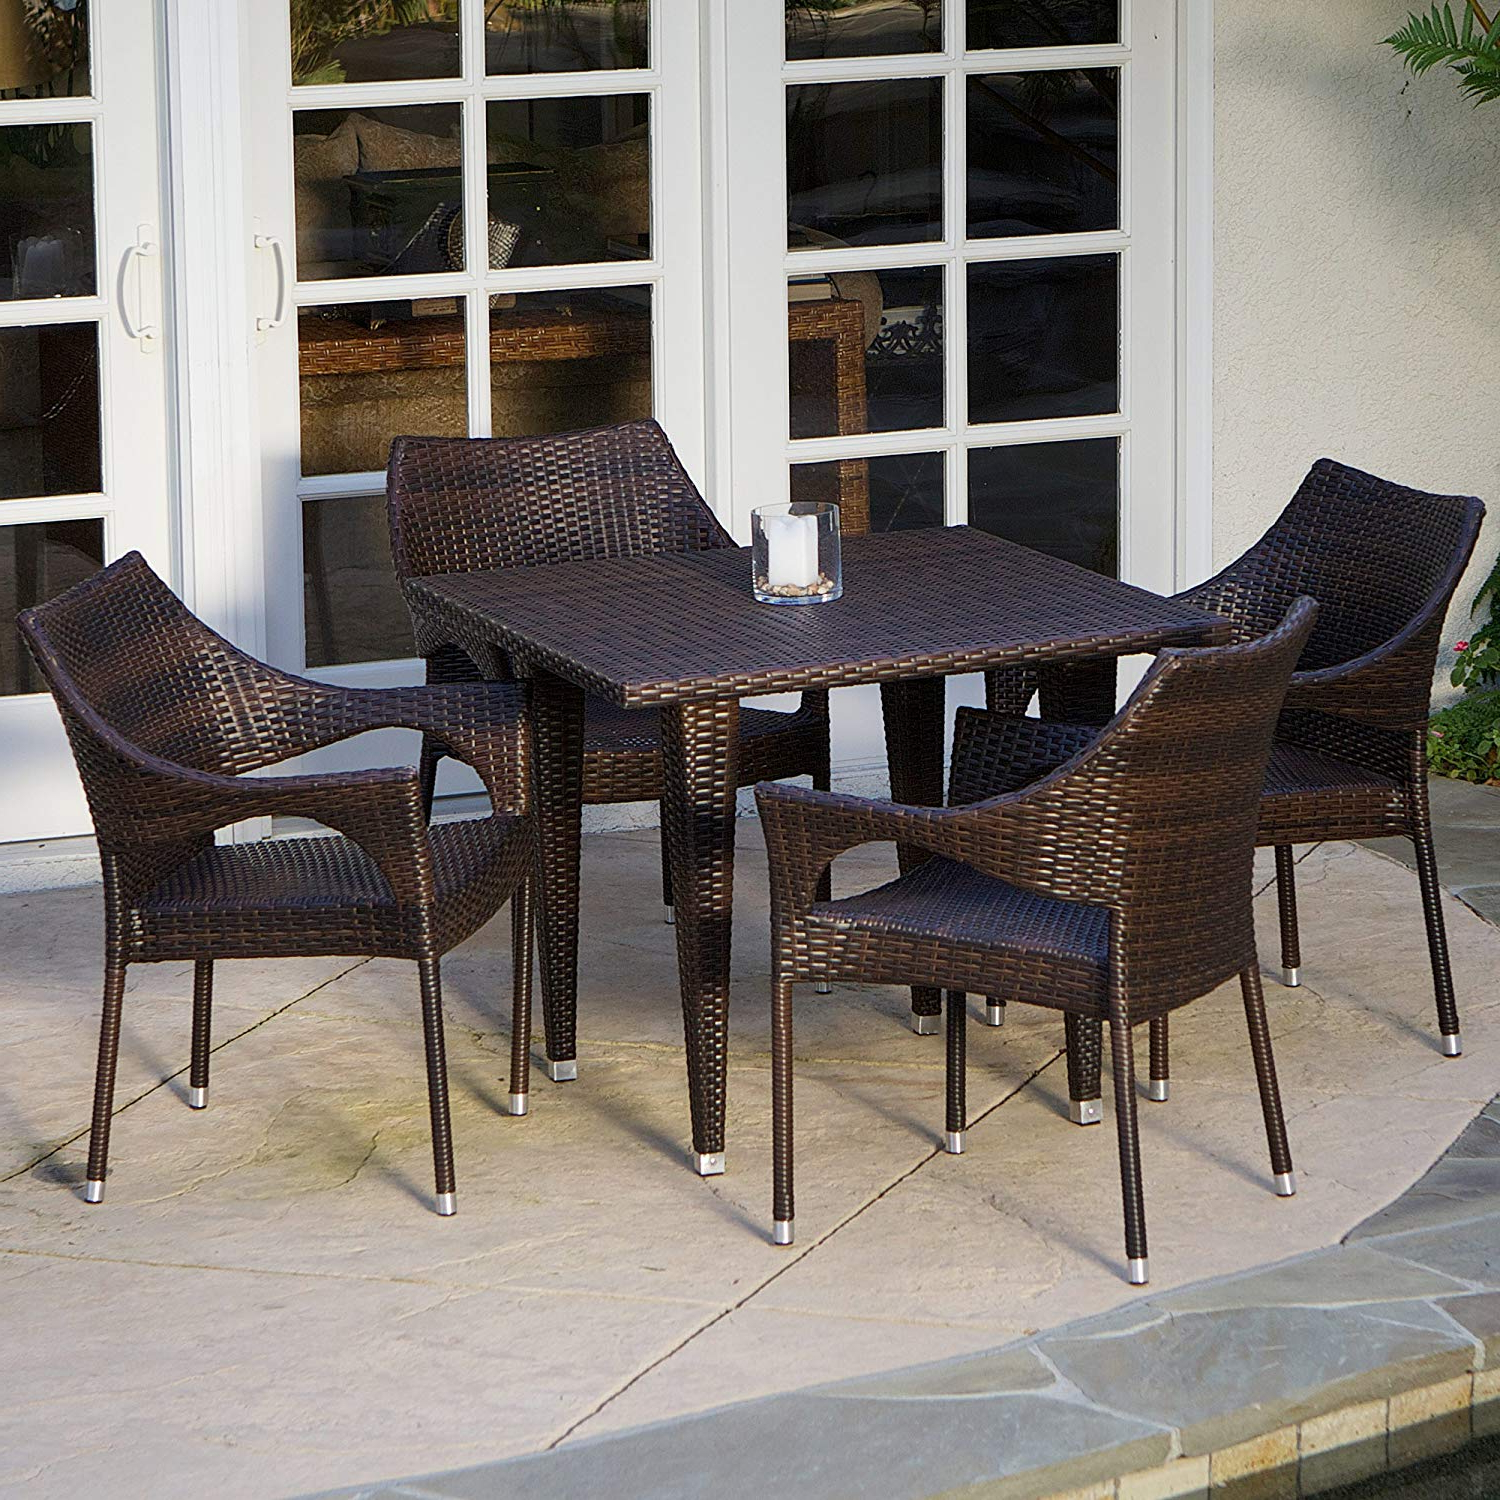 5 Piece Outdoor Wicker Dining Set With Stacking Chairs (View 12 of 20)